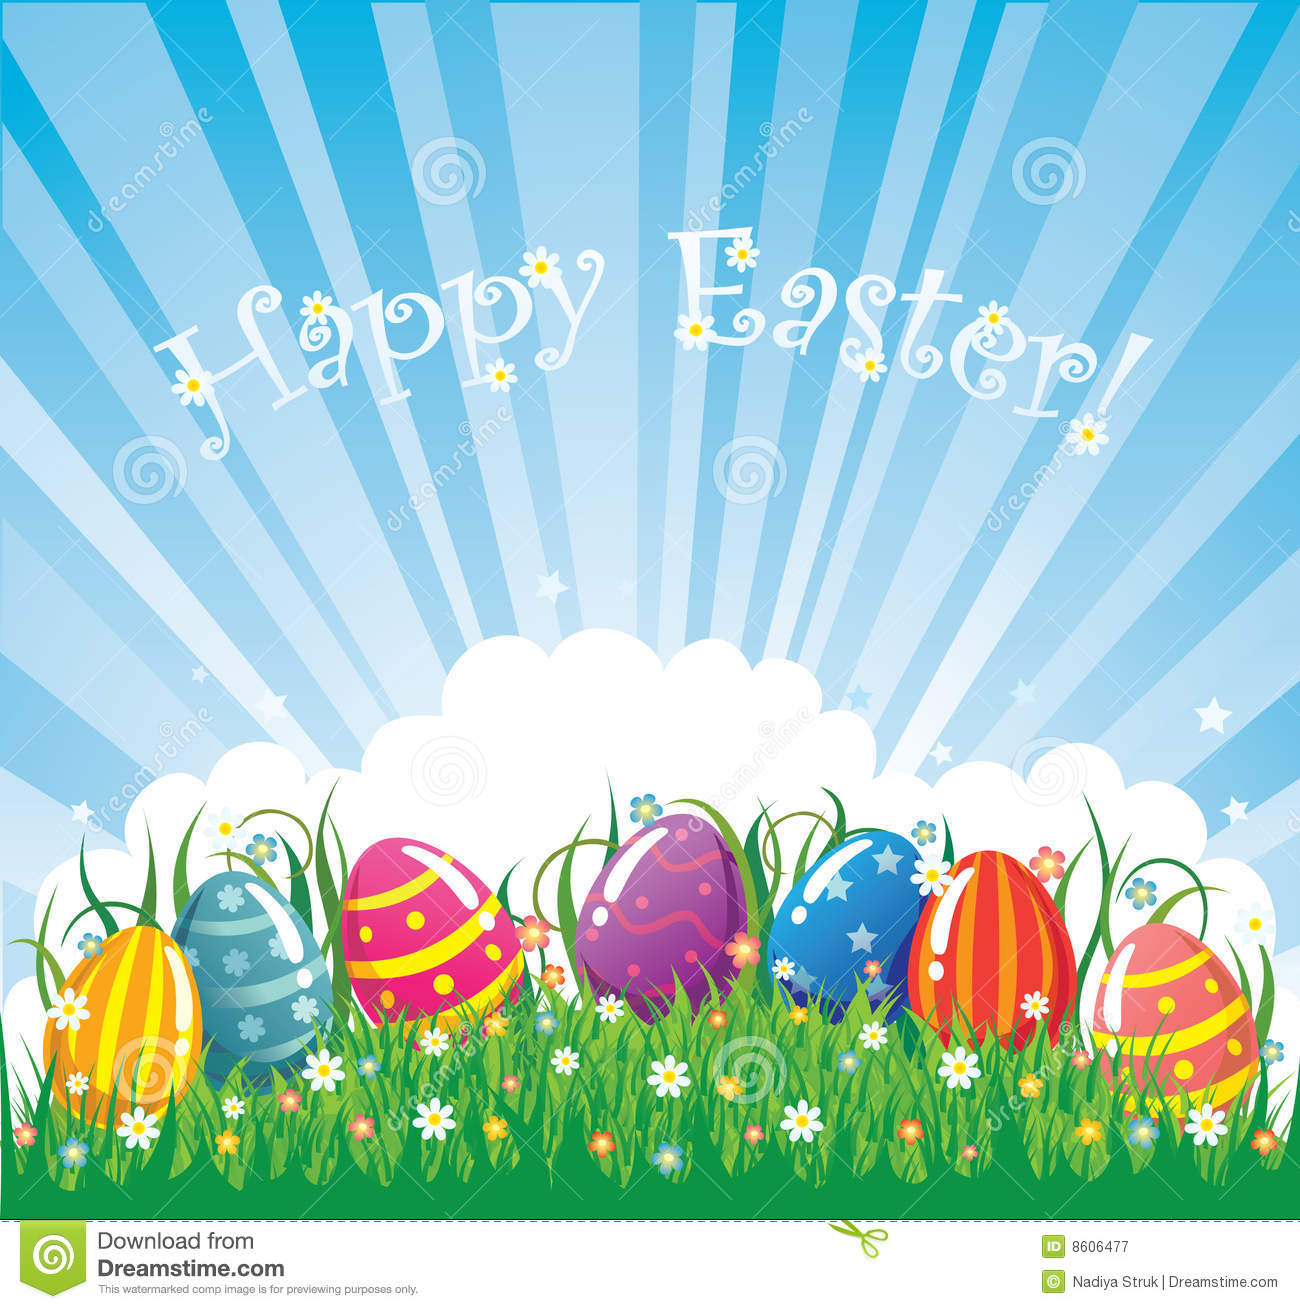 Free Vector Easter Banner